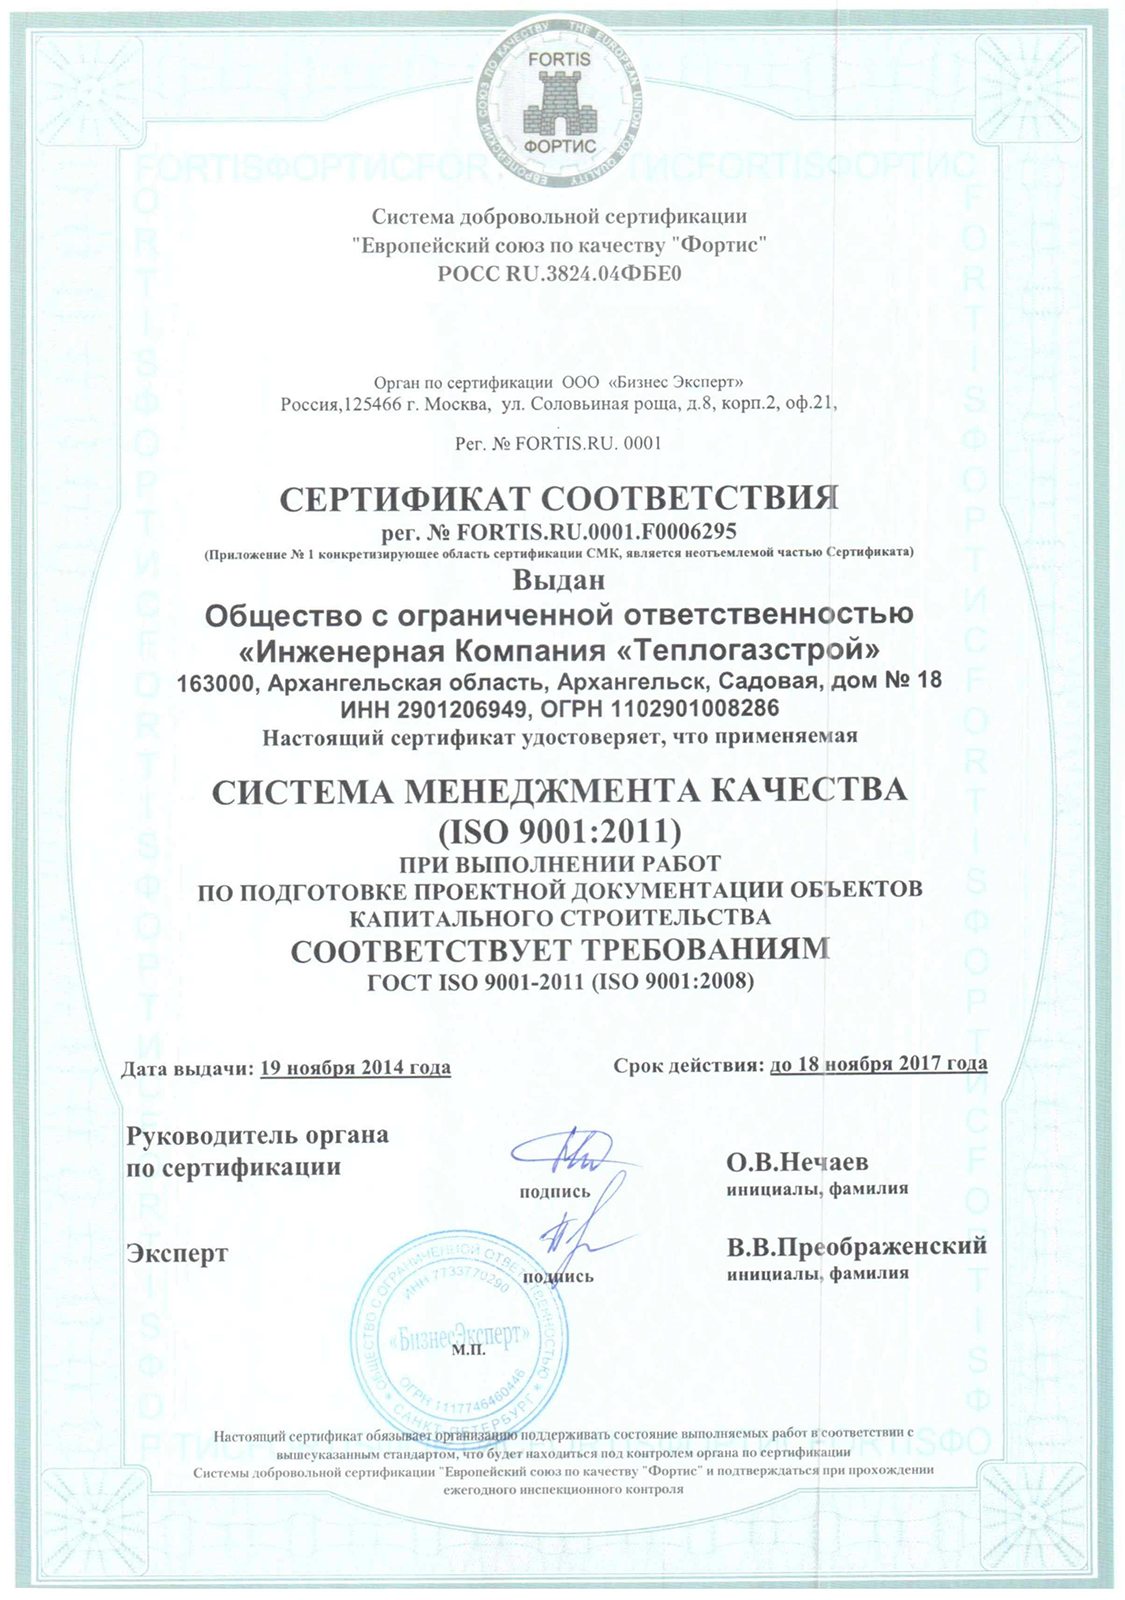 Certificate of compliance ISO 9001: 2011 in the implementation of project documentation